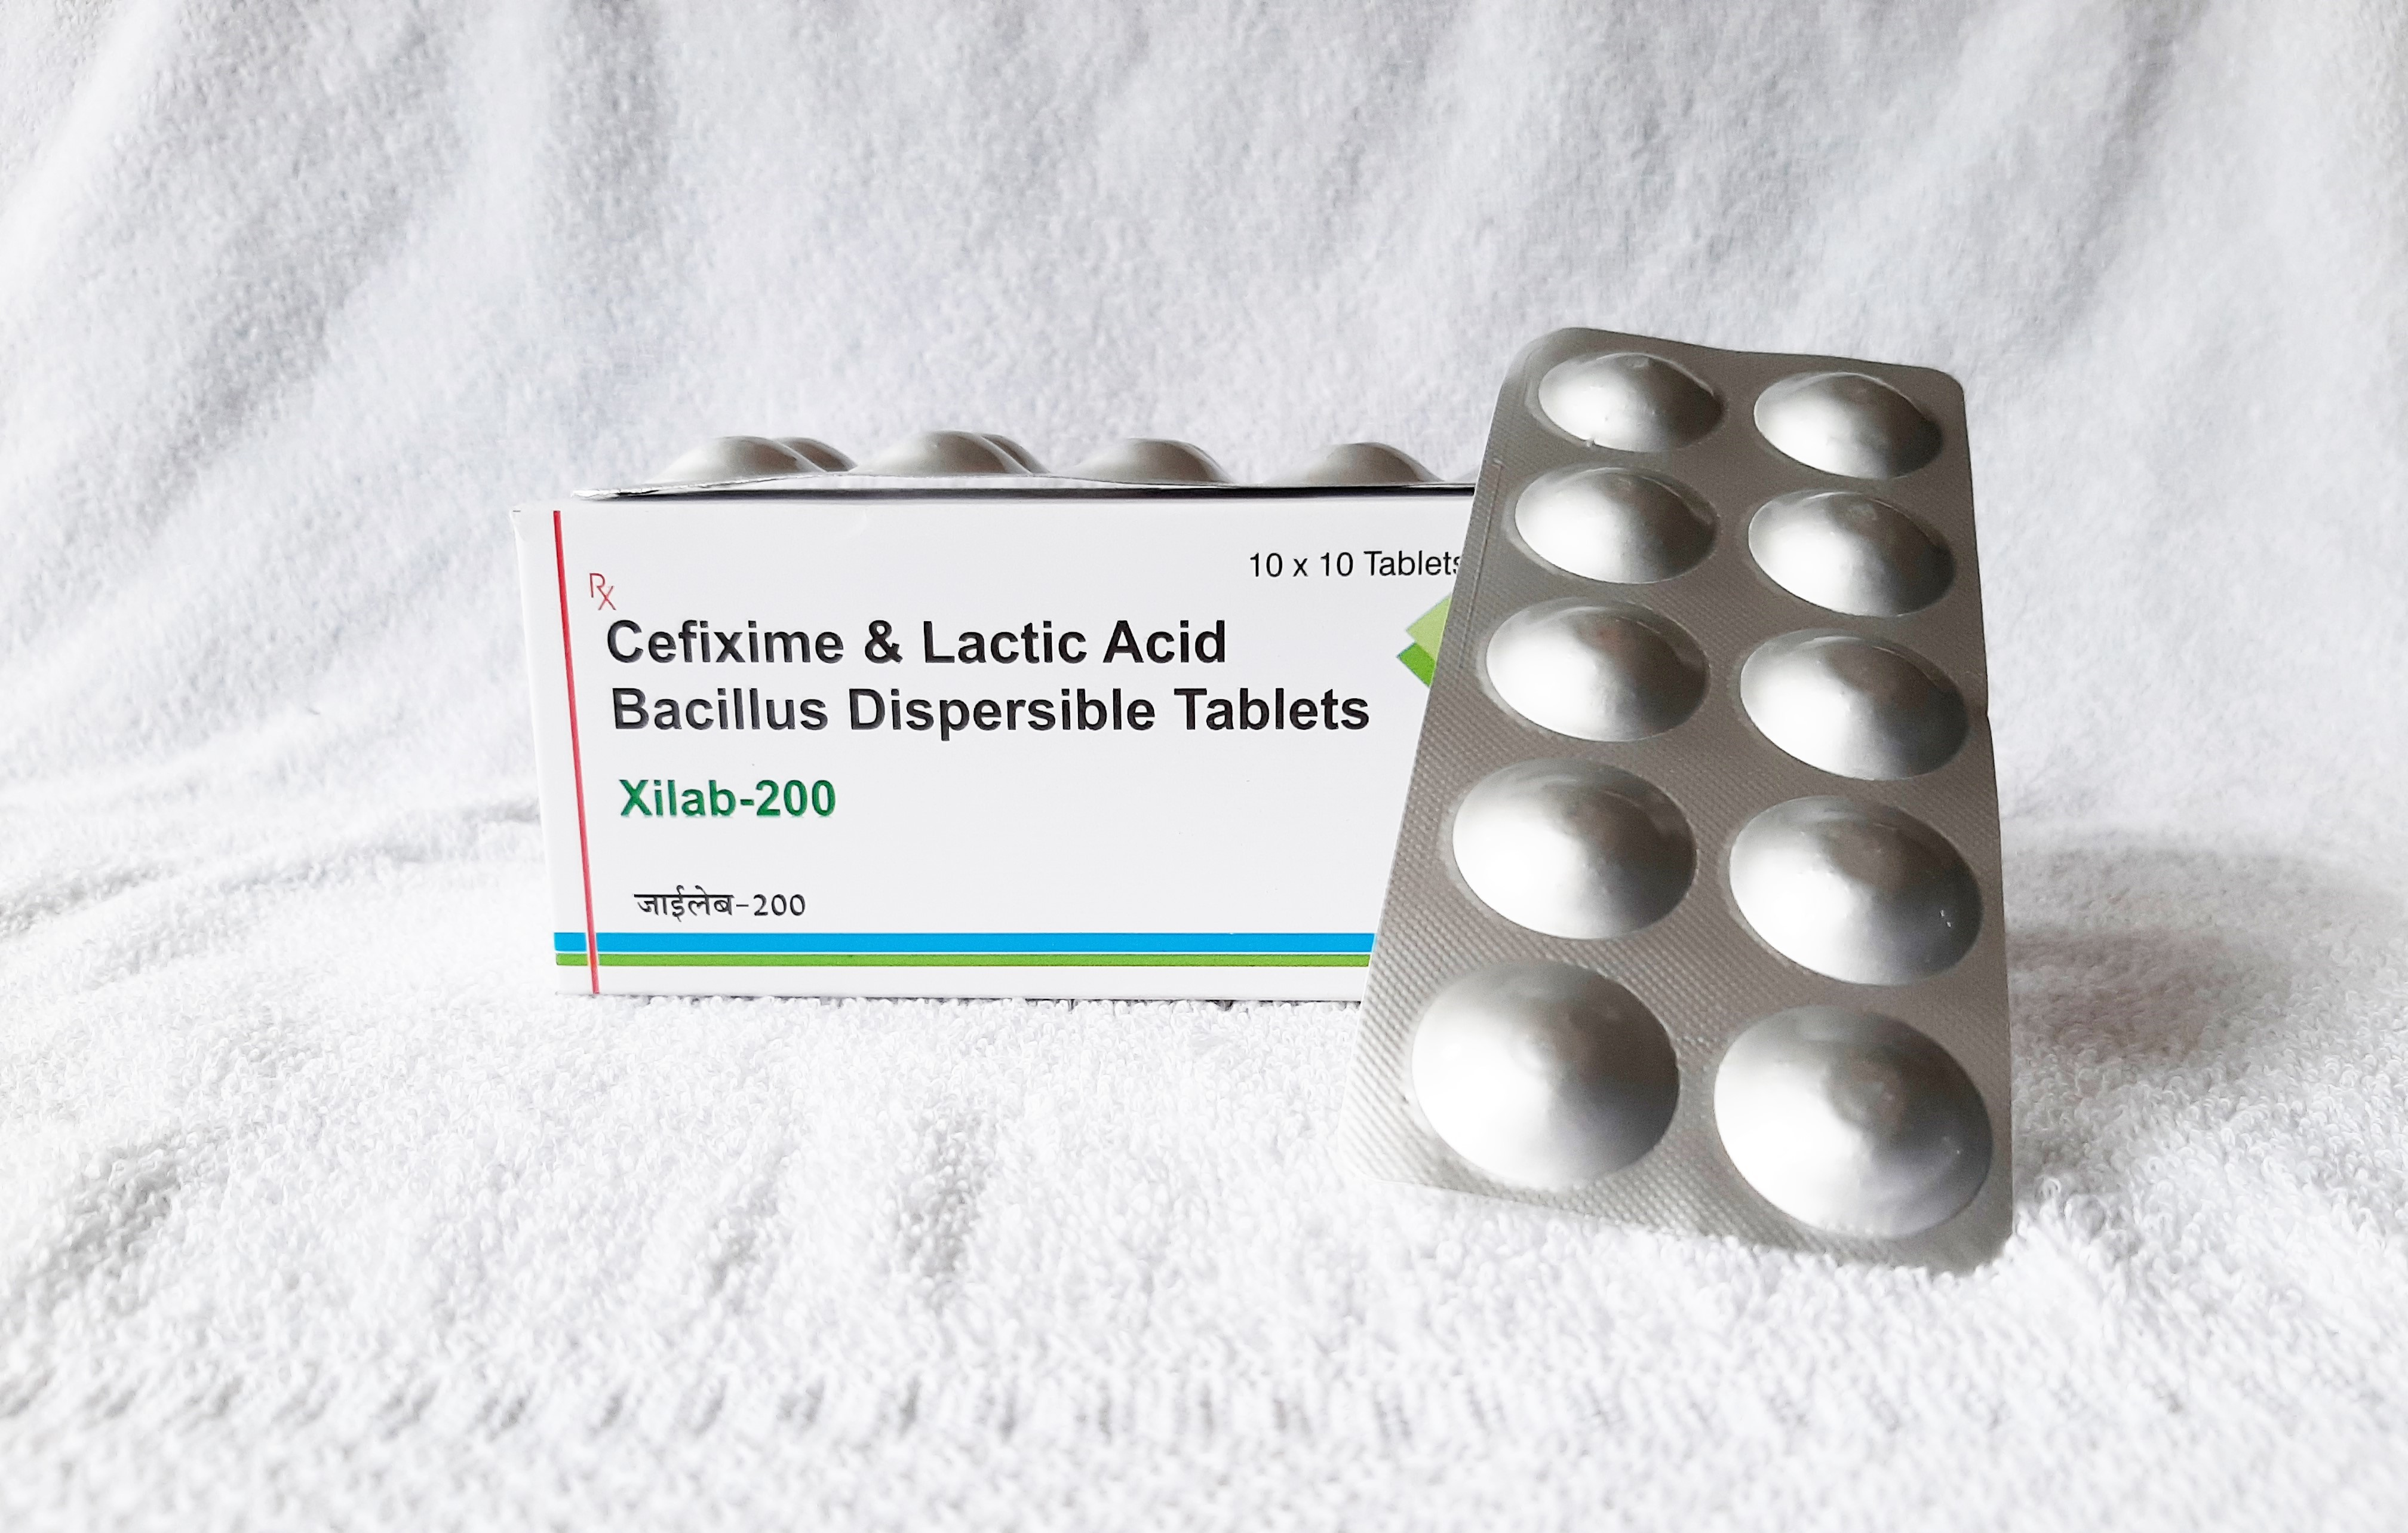 Cefixime and Lactic Acid Bacillus Allopathic Tablets